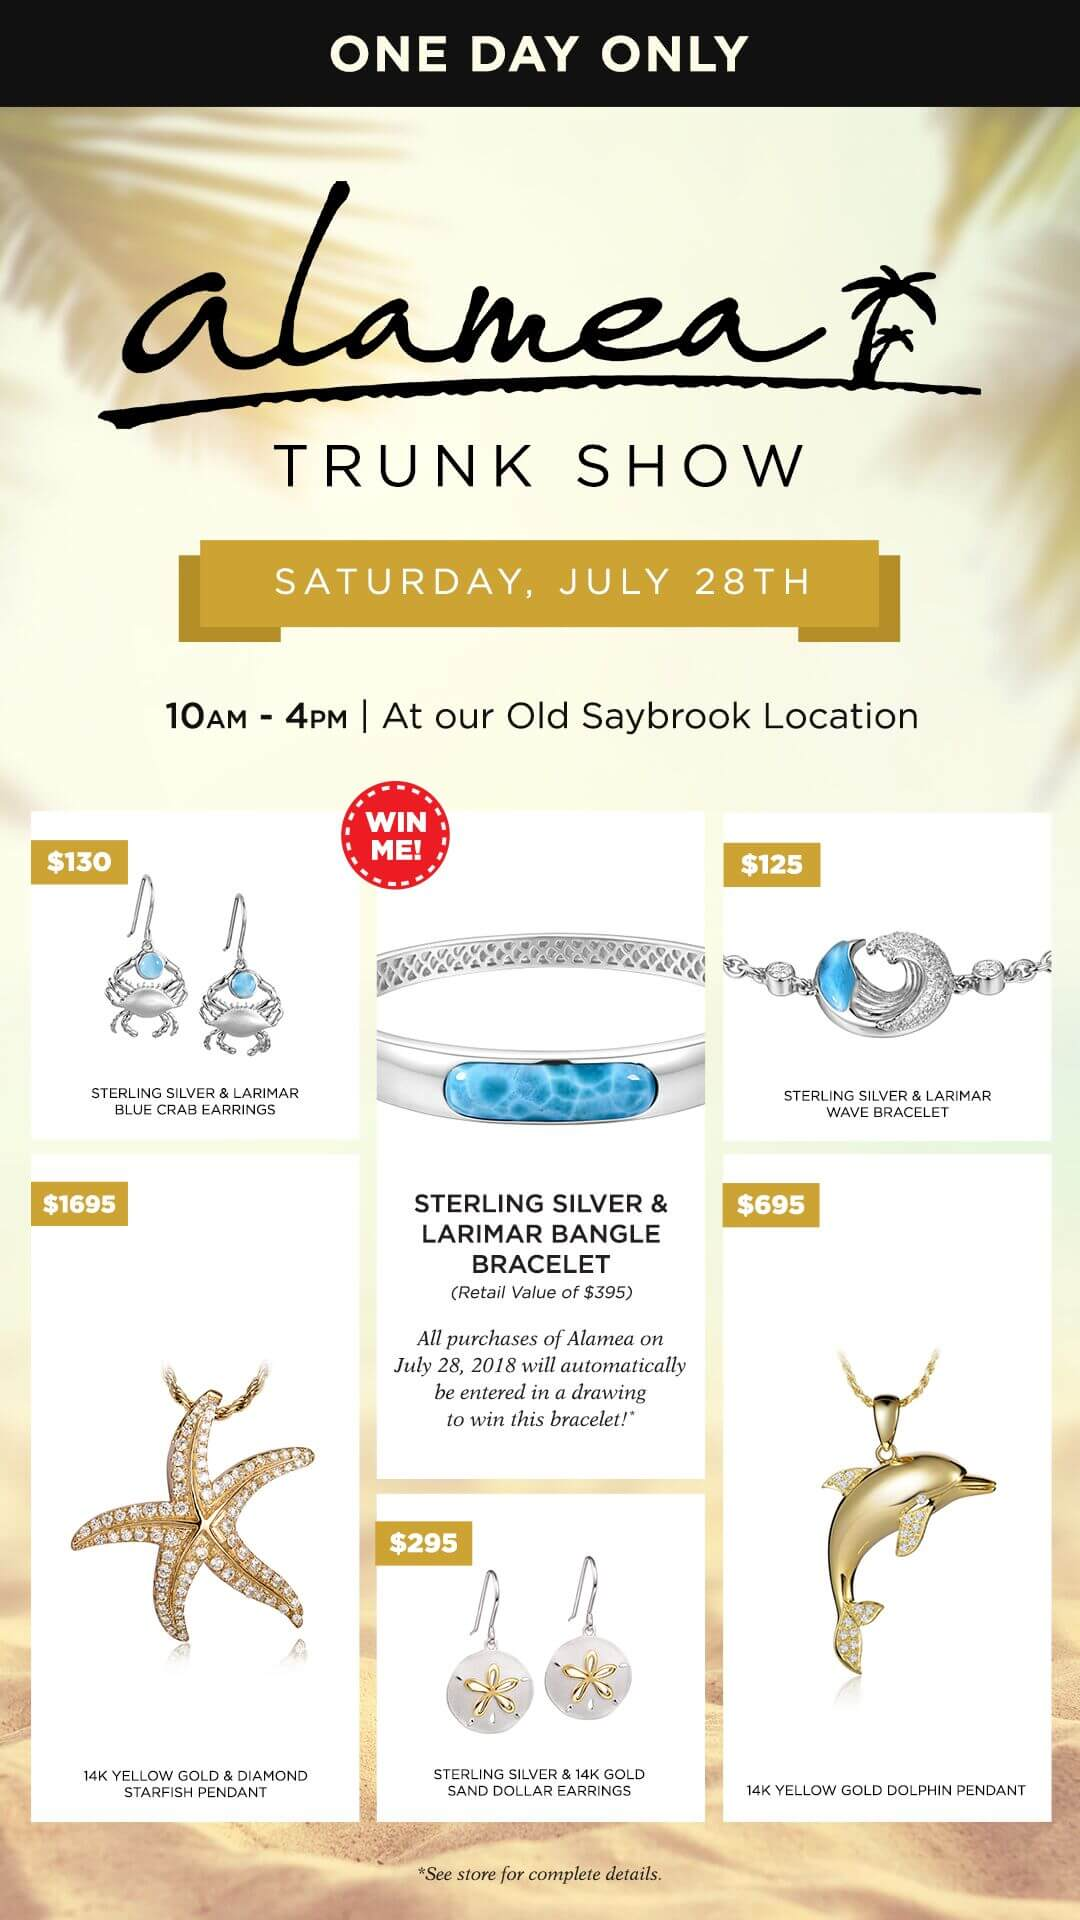 Alamea Trunk Show July 28th in Old Saybrook